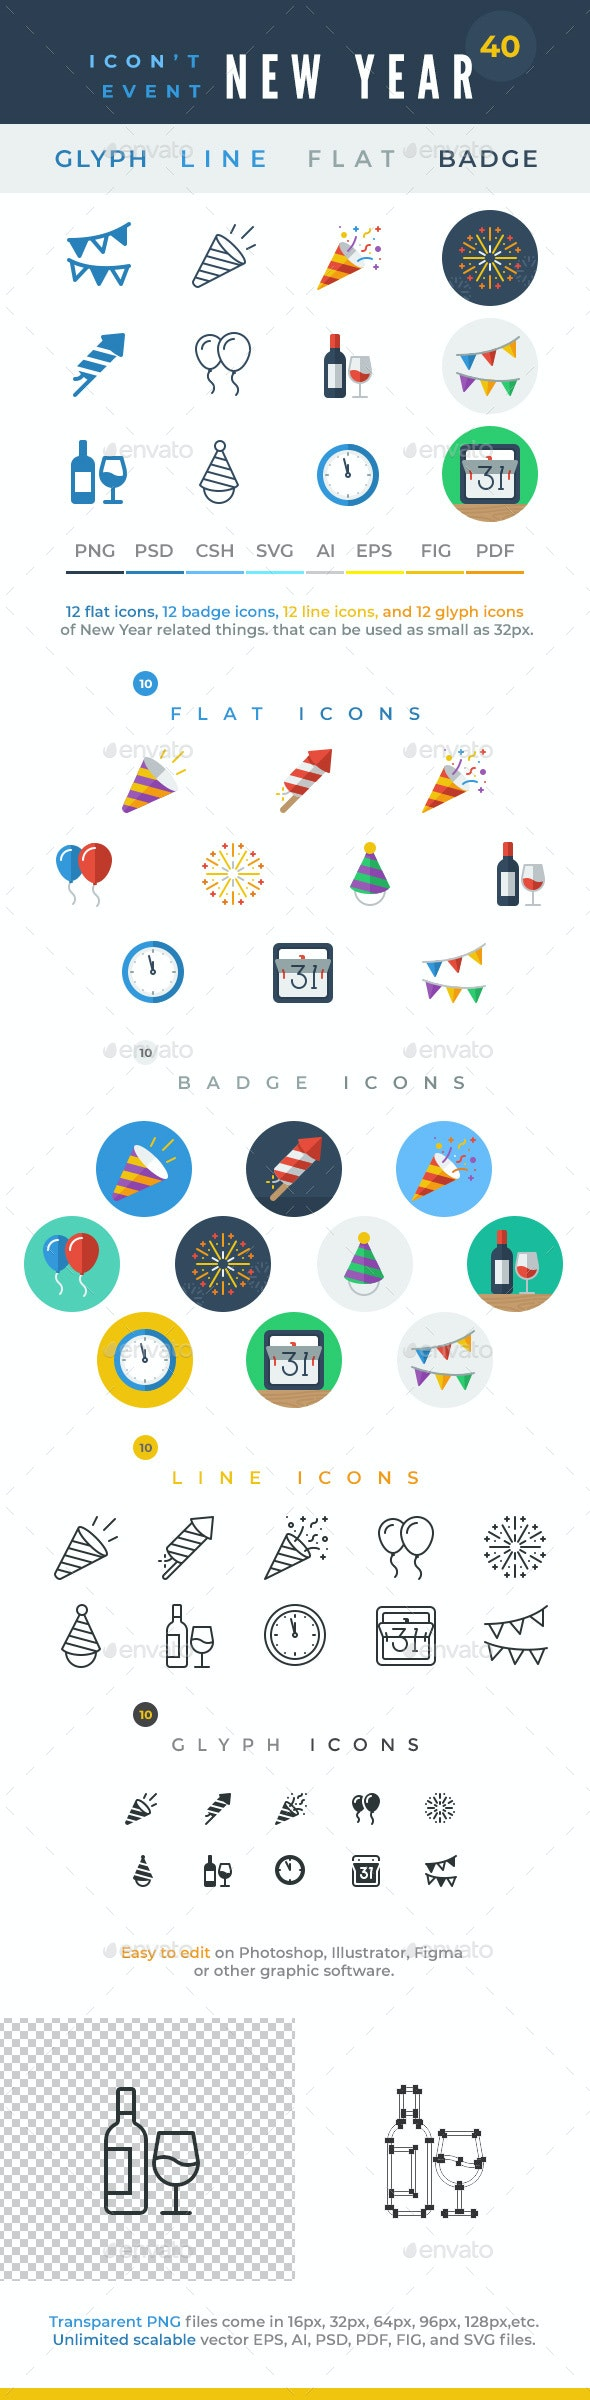 Icon't Event - 40 New Year Icons - Seasonal Icons